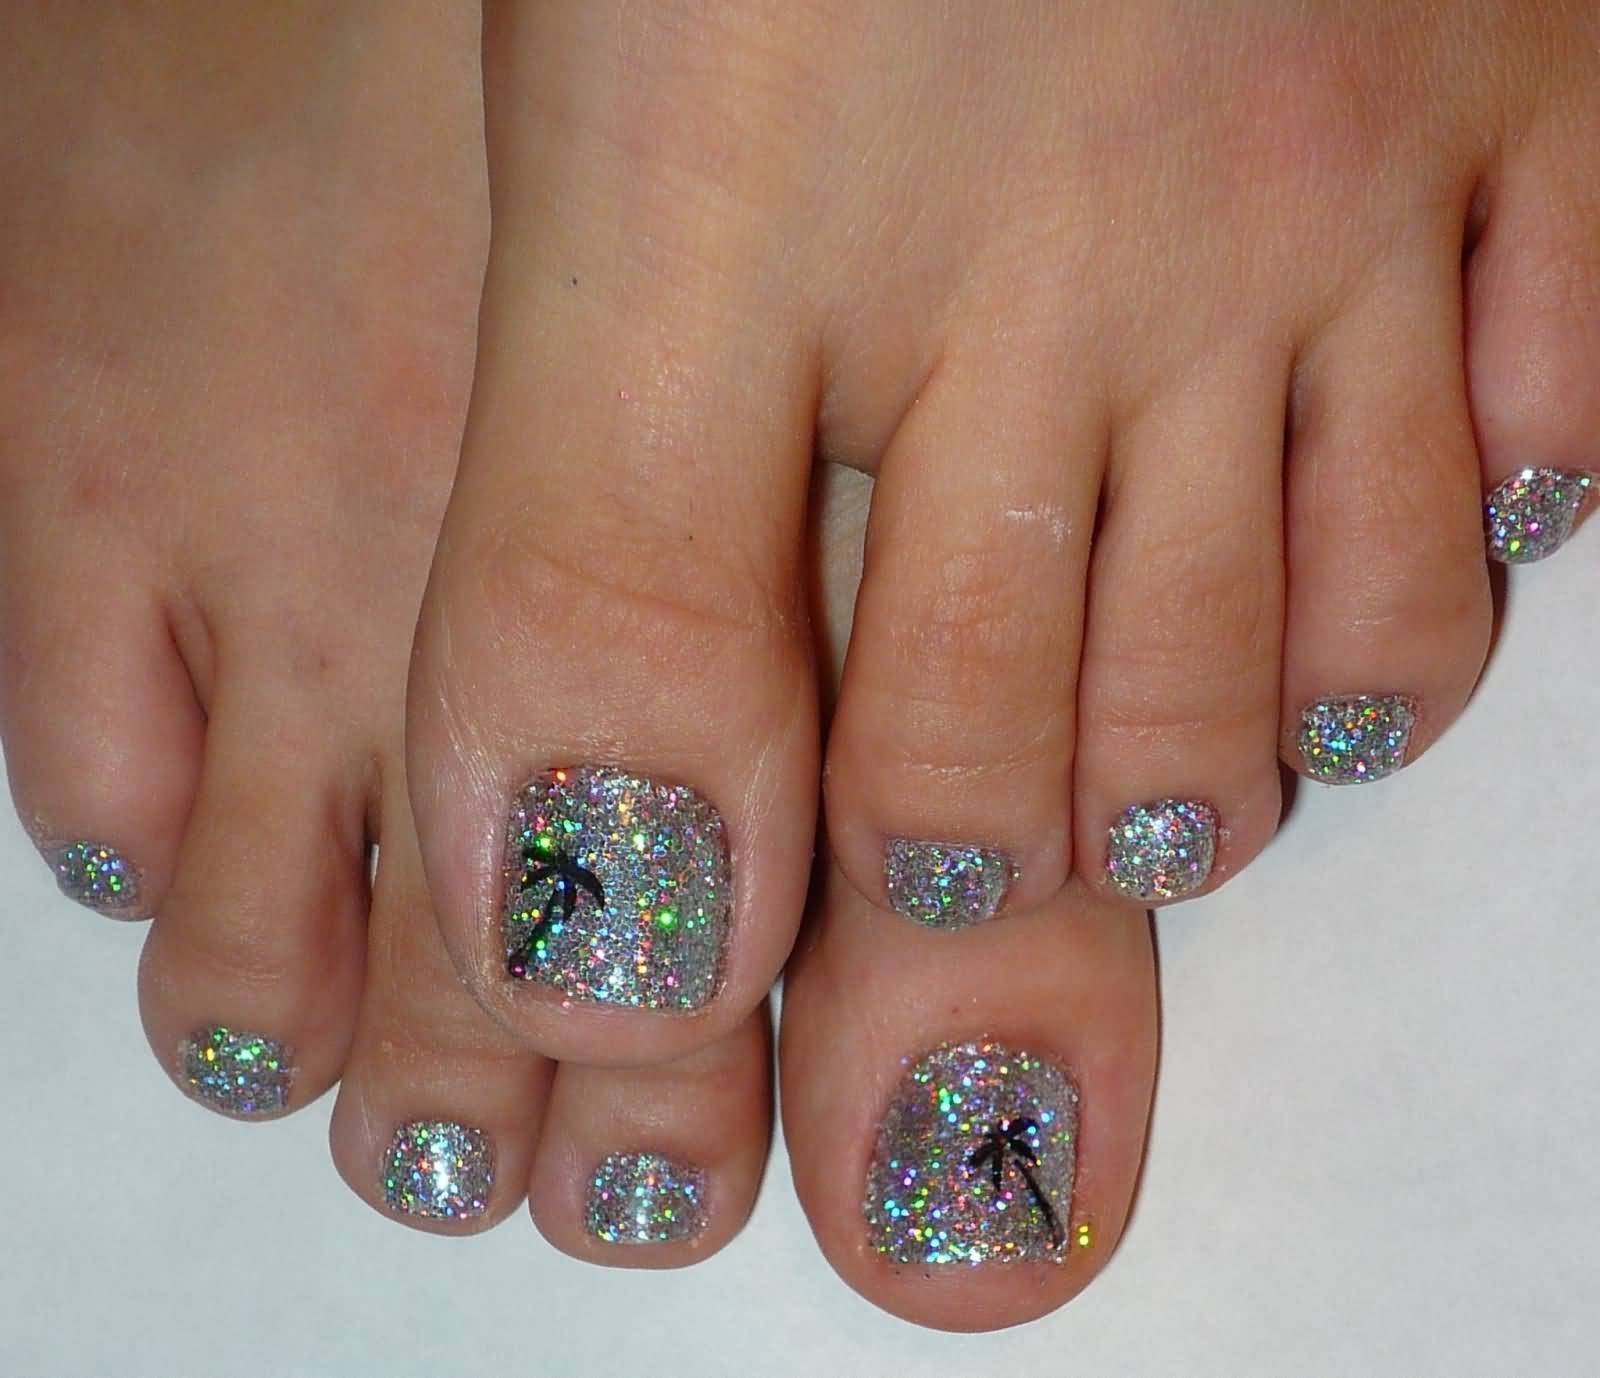 50 Best Toe Glitter Nail Art Design Ideas